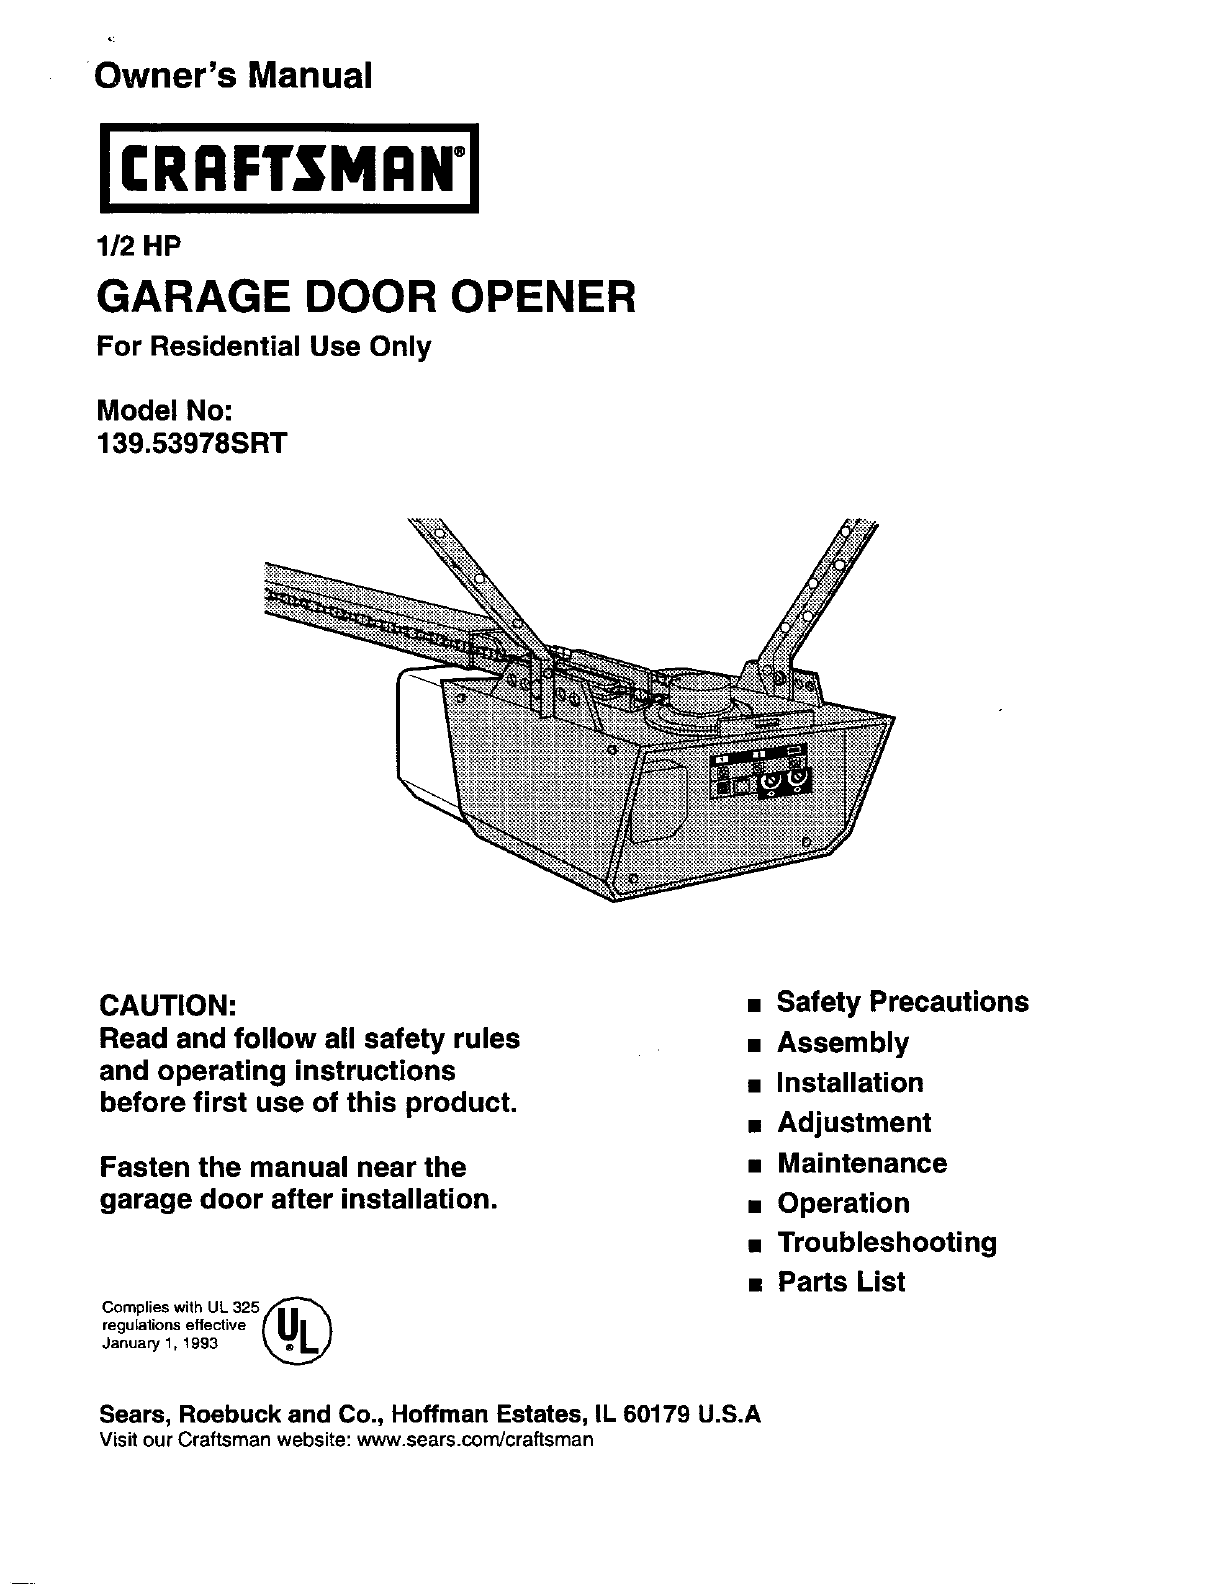 0f05b938 d0cb 4872 aeee 96ef63eab4f3 bg1 craftsman garage door opener 139 53978srt user guide craftsman garage door wiring diagram at n-0.co